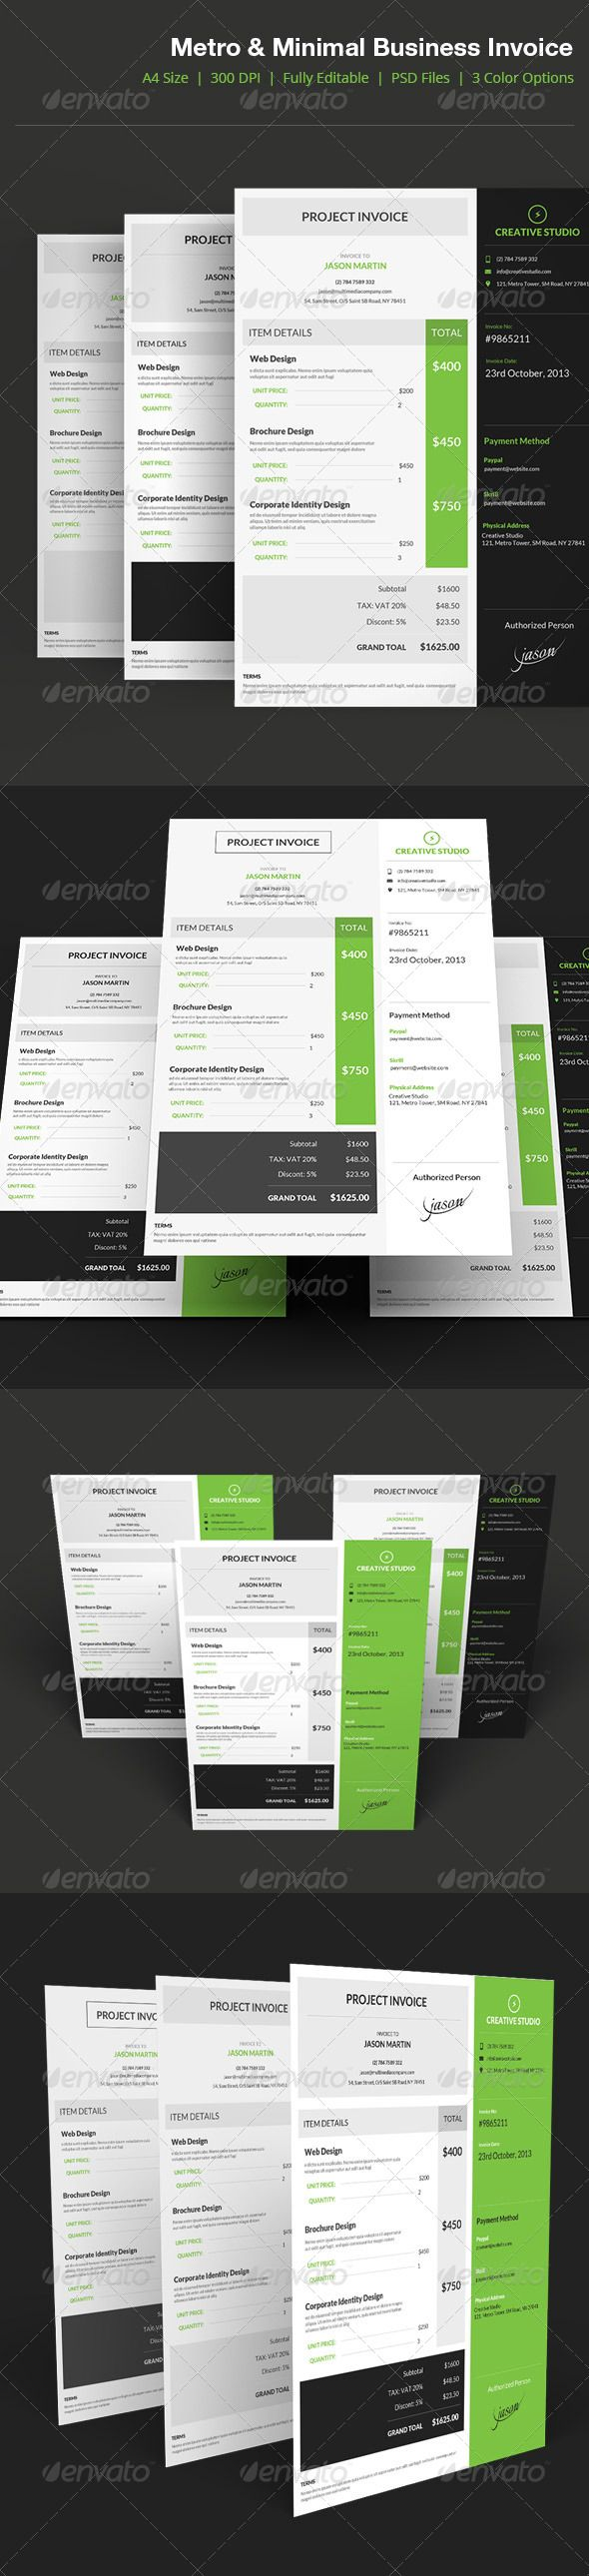 Metro Style Business Invoice - 04 by bouncy Metro Style Flat Business Invoice Features A4 Size(210mm x 297mm with bleed) 300 DPI CMYK Print Ready! Full Editable, Layeredyou c